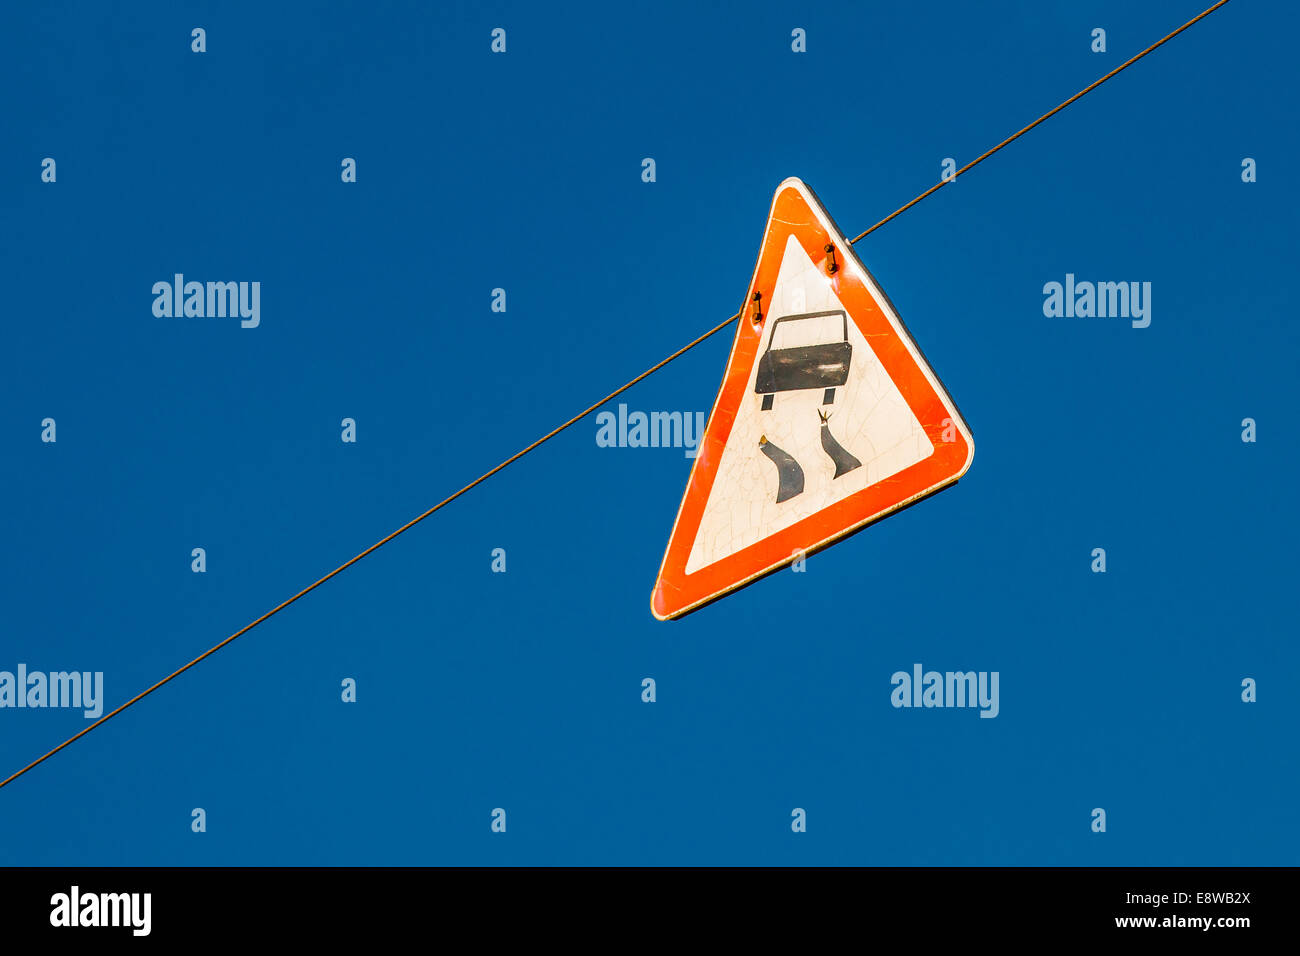 Be Prepared For Stunt Driving. A warning road sign hanging on a wire rope high in the blue sky - Stock Image